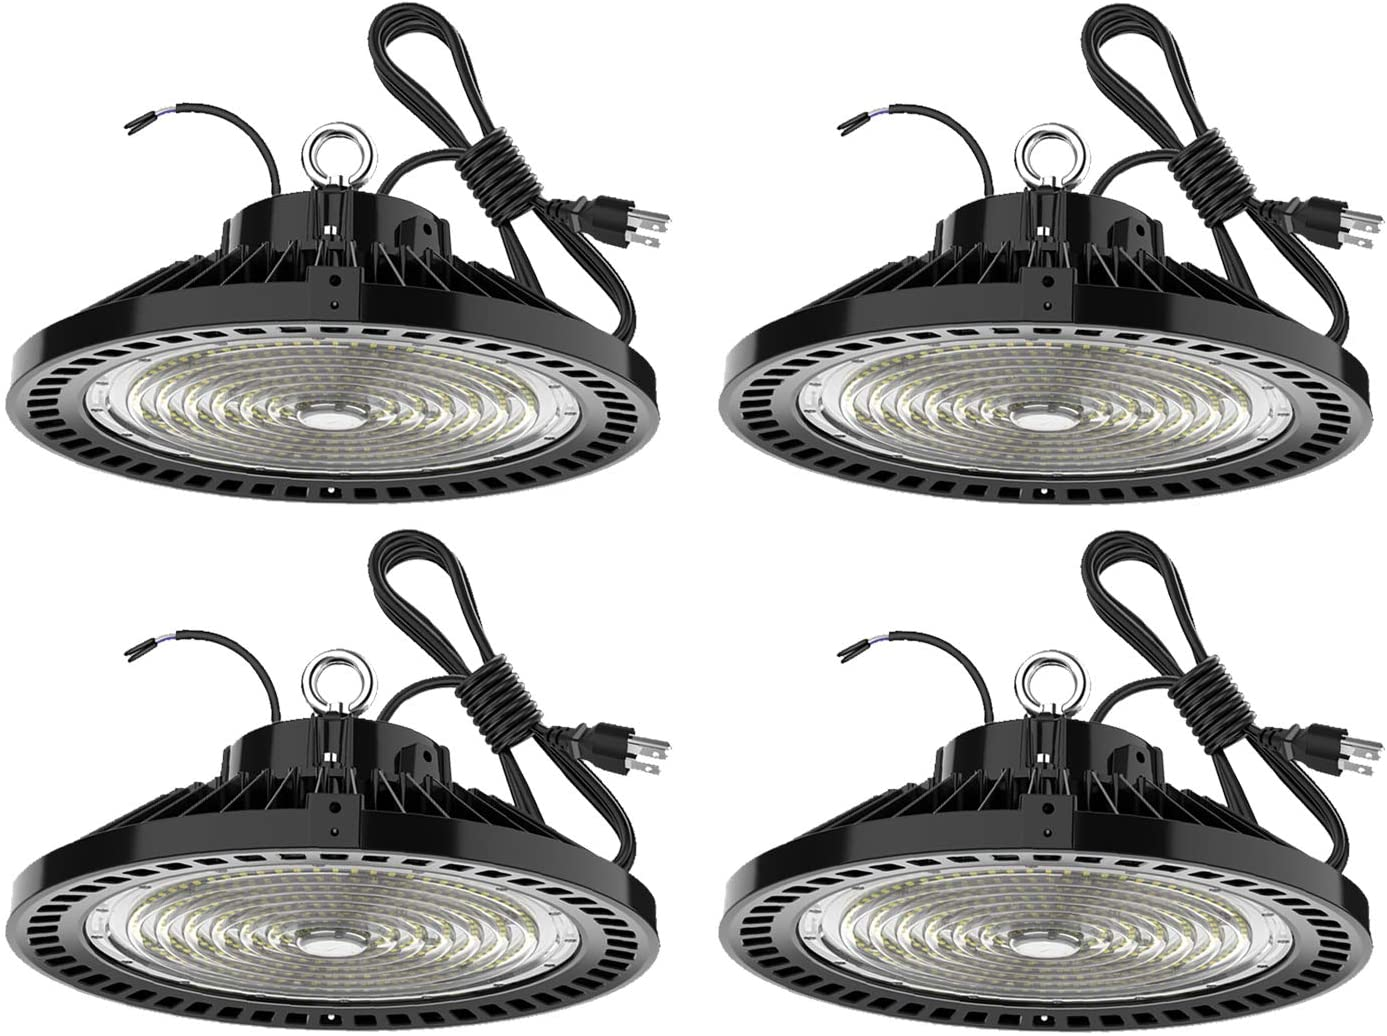 240W High Bay LED Attention brand Lighting Dimmable Listed online shop Lumens 900W HPS 36000